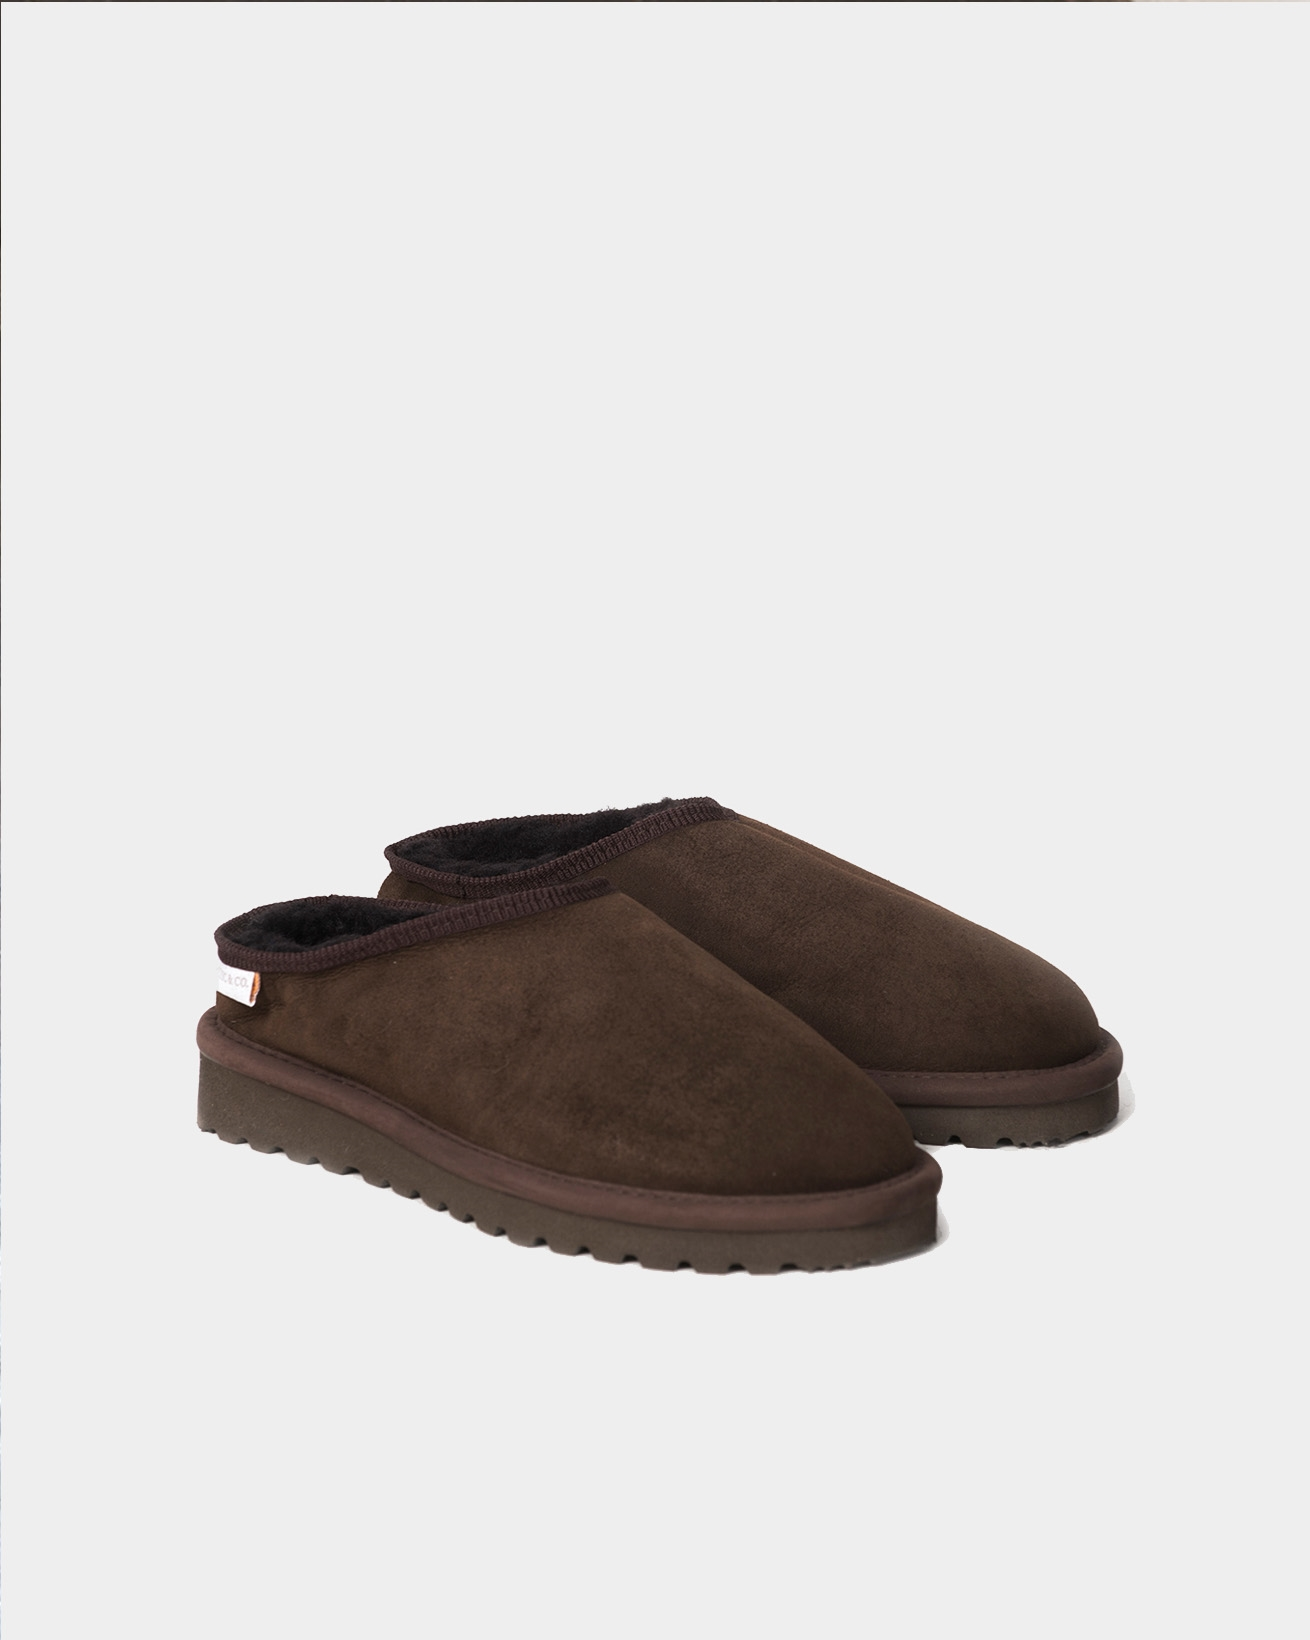 Mens Clogs with back - Size 7 - Mocca - 2013